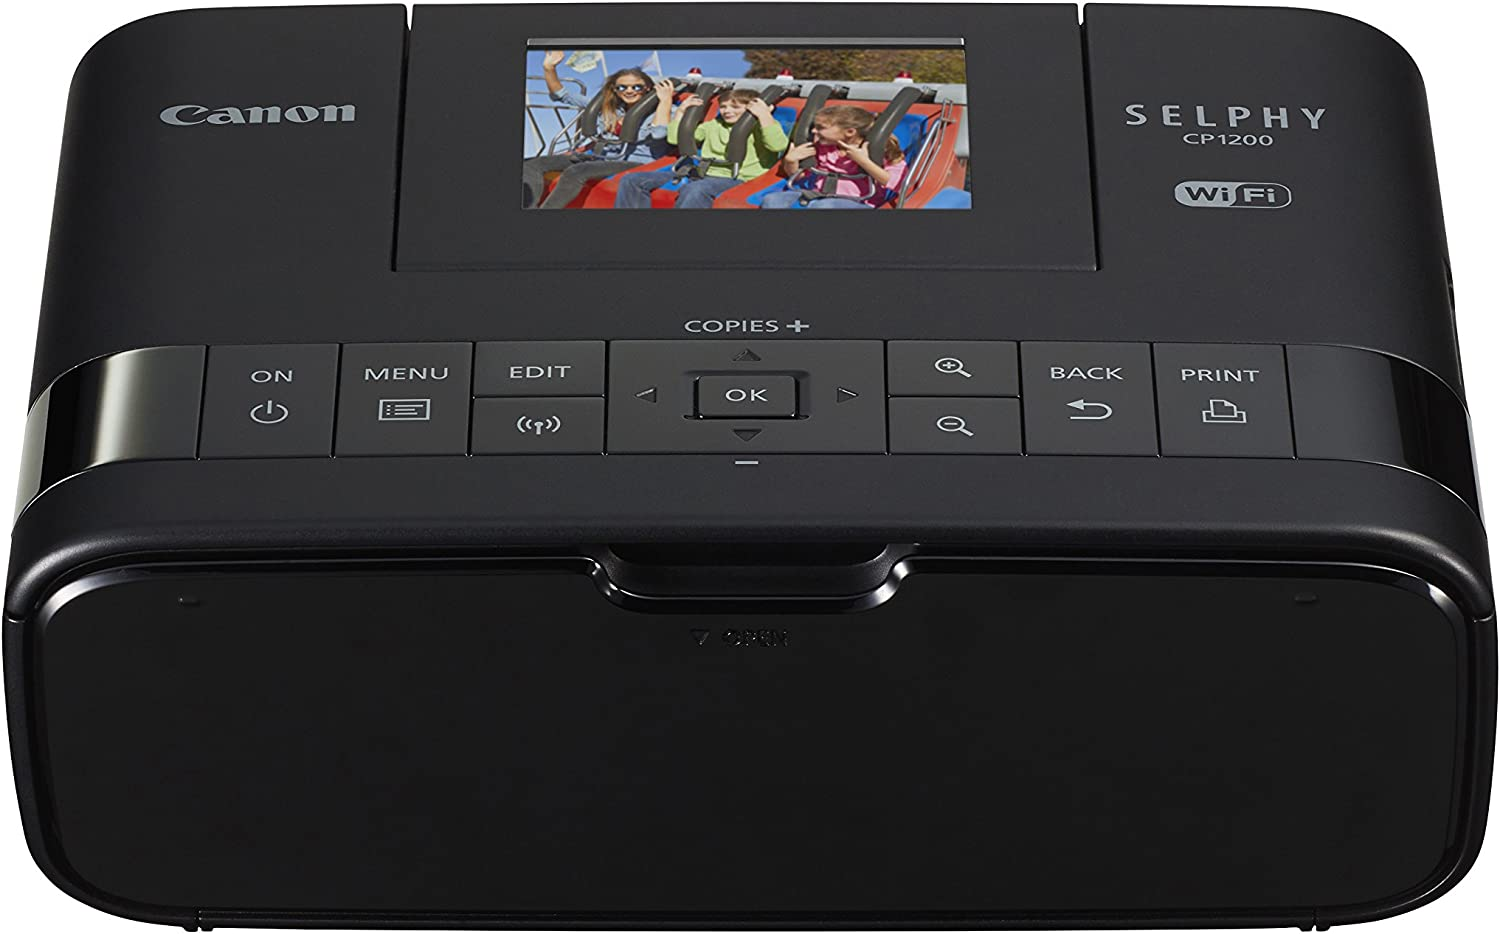 Top 10 Best Portable Photo Printer Reviews in 2020 6